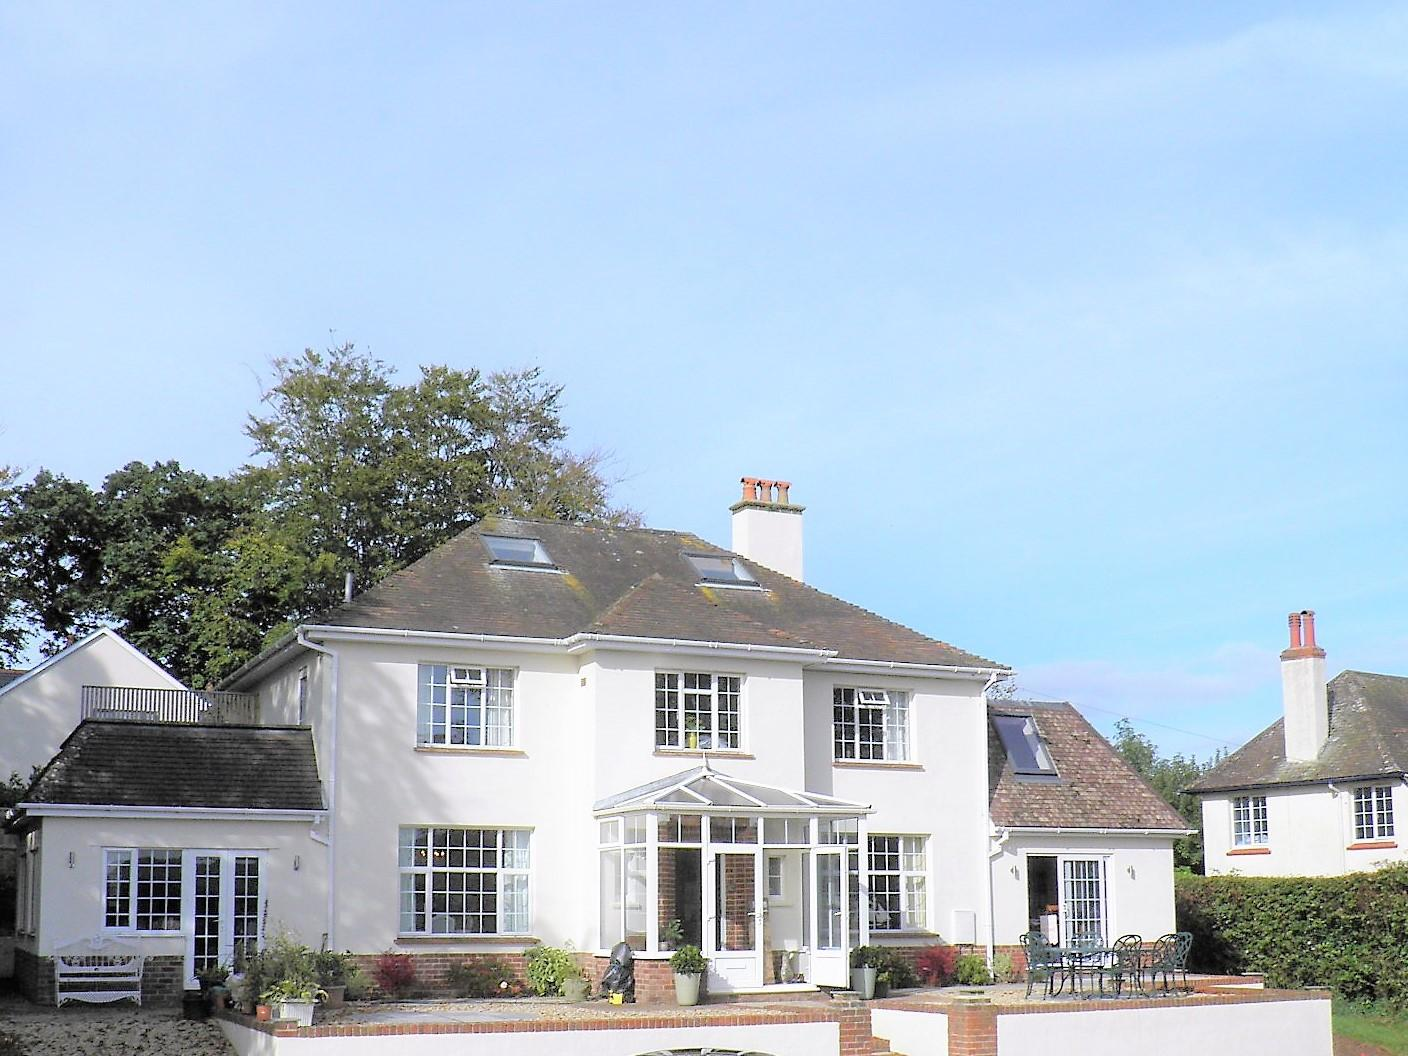 Cranleigh Bed & Breakfast - 3 Nights B&B £210.00.